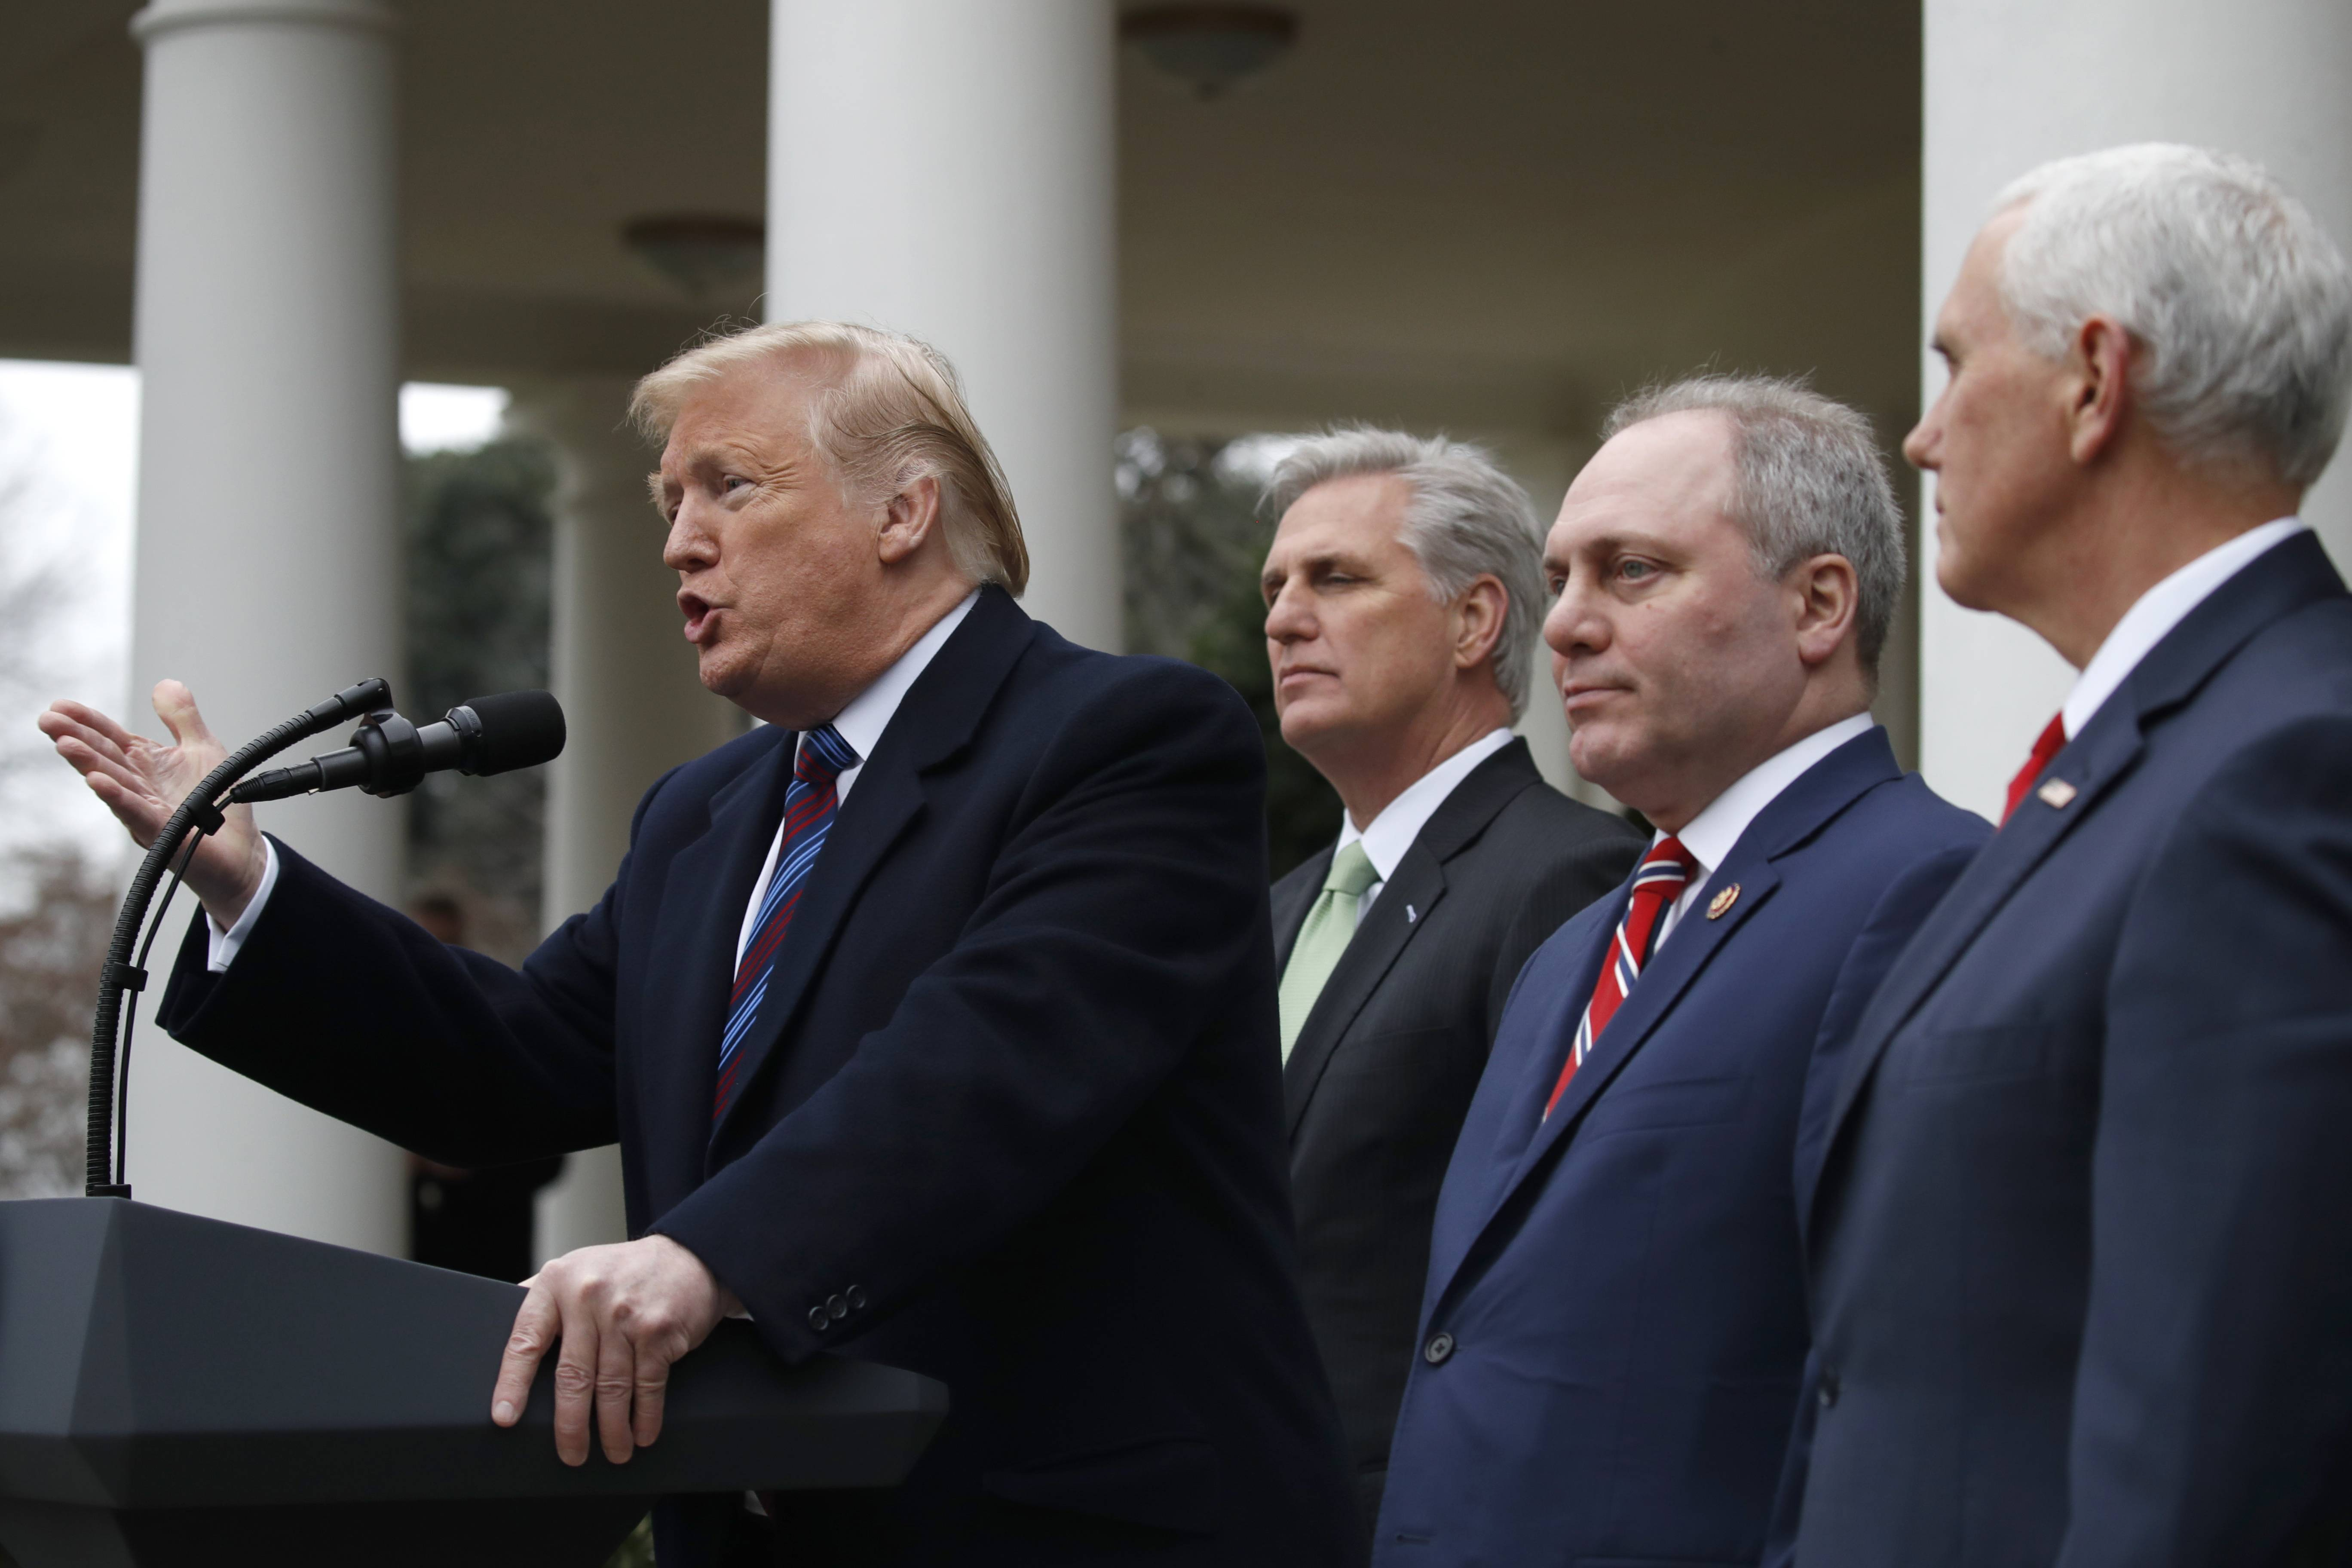 President Donald Trump speaks Friday in the Rose Garden of the White House after a meeting with Congressional leaders on border security, as House Republican leader Kevin McCarthy, House Republican whip Steve Scalise and Vice President Mike Pence listen.